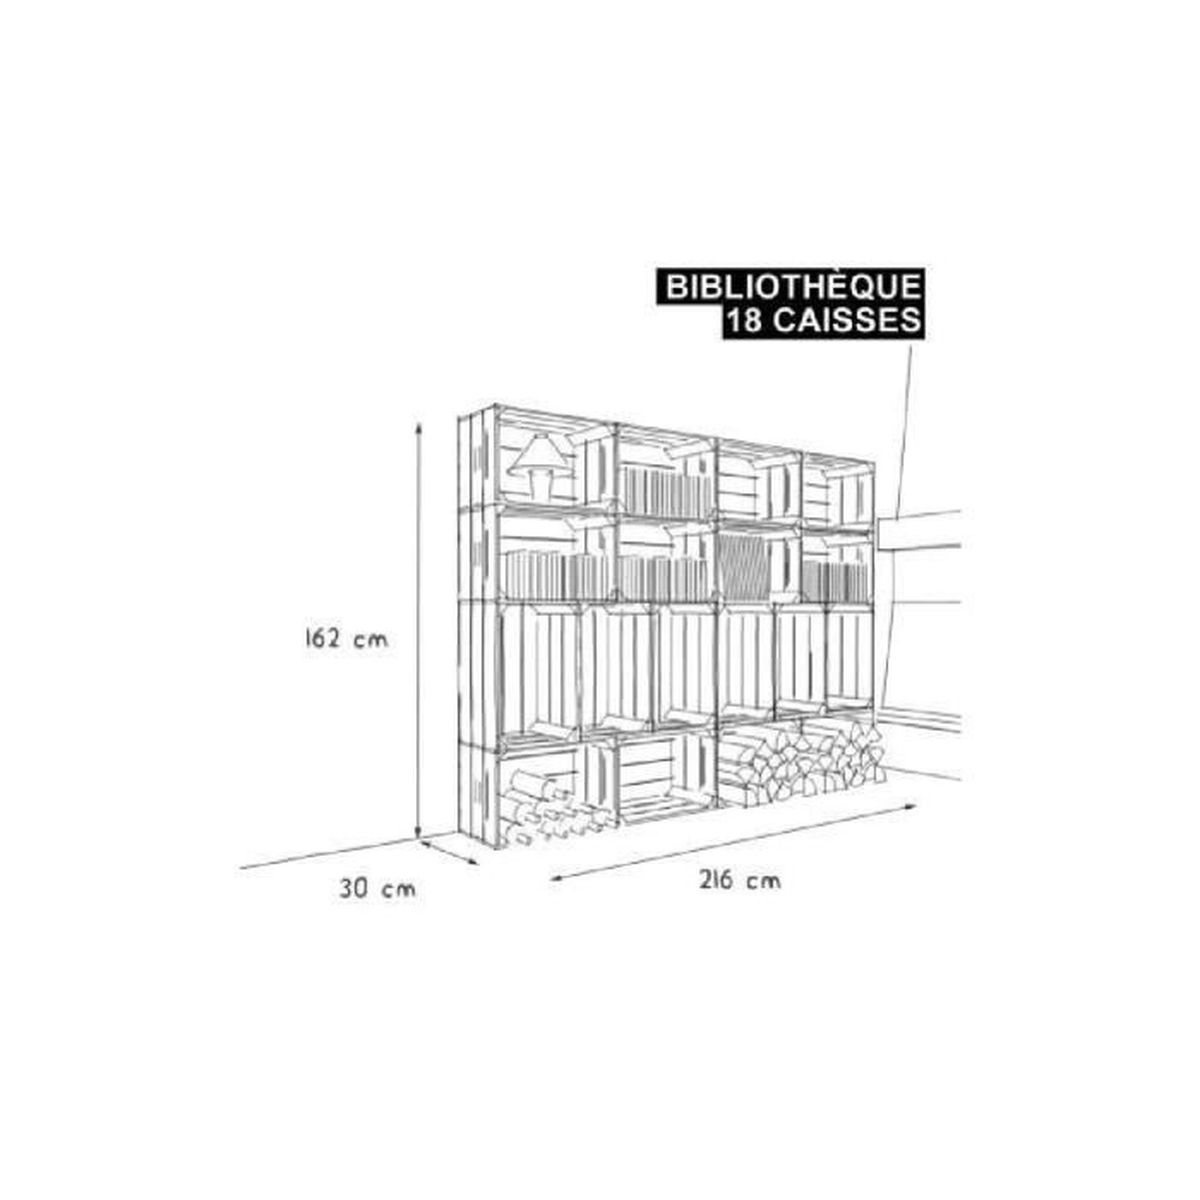 biblioth que 18s kit pr t assembler caisses en bois x18 fabriqu e main en france. Black Bedroom Furniture Sets. Home Design Ideas